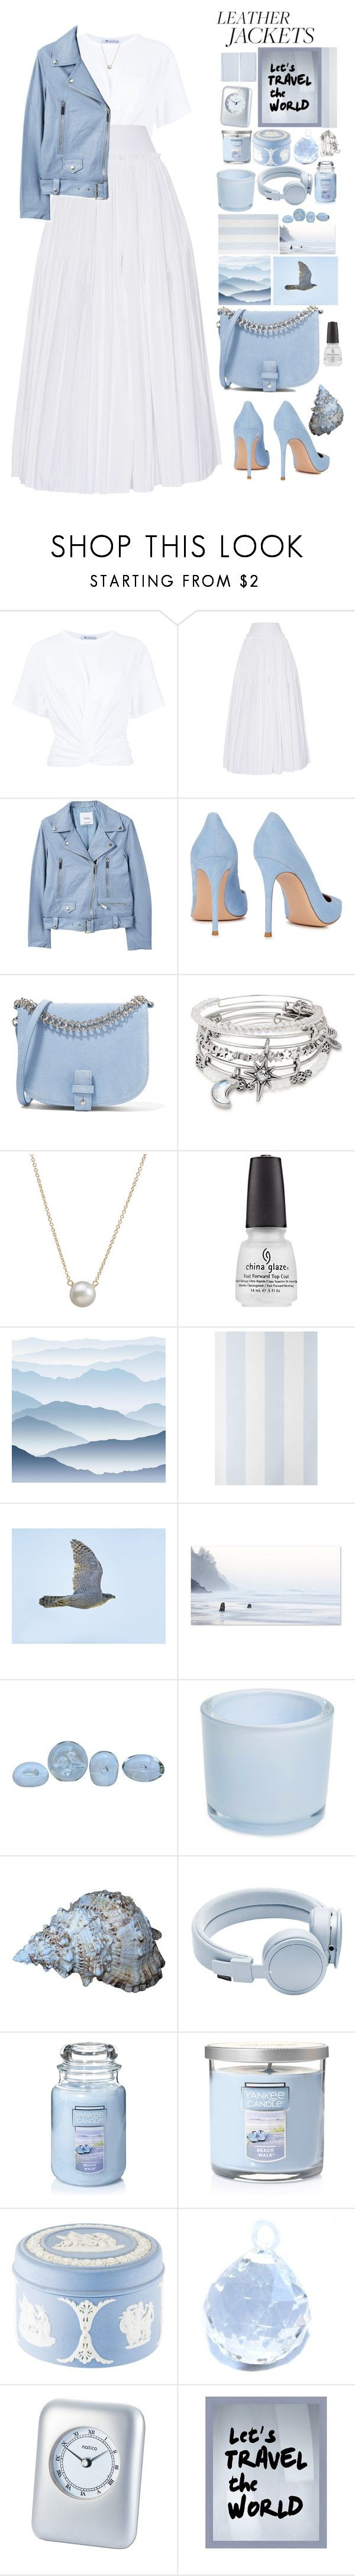 """""""Leather jacket"""" by foximperial ❤ liked on Polyvore featuring T By Alexander Wang, Alberta Ferretti, MANGO, Gianvito Rossi, Little Liffner, Alex and Ani, Dogeared, York Wallcoverings, Anthropologie and Drew Doggett Photography"""